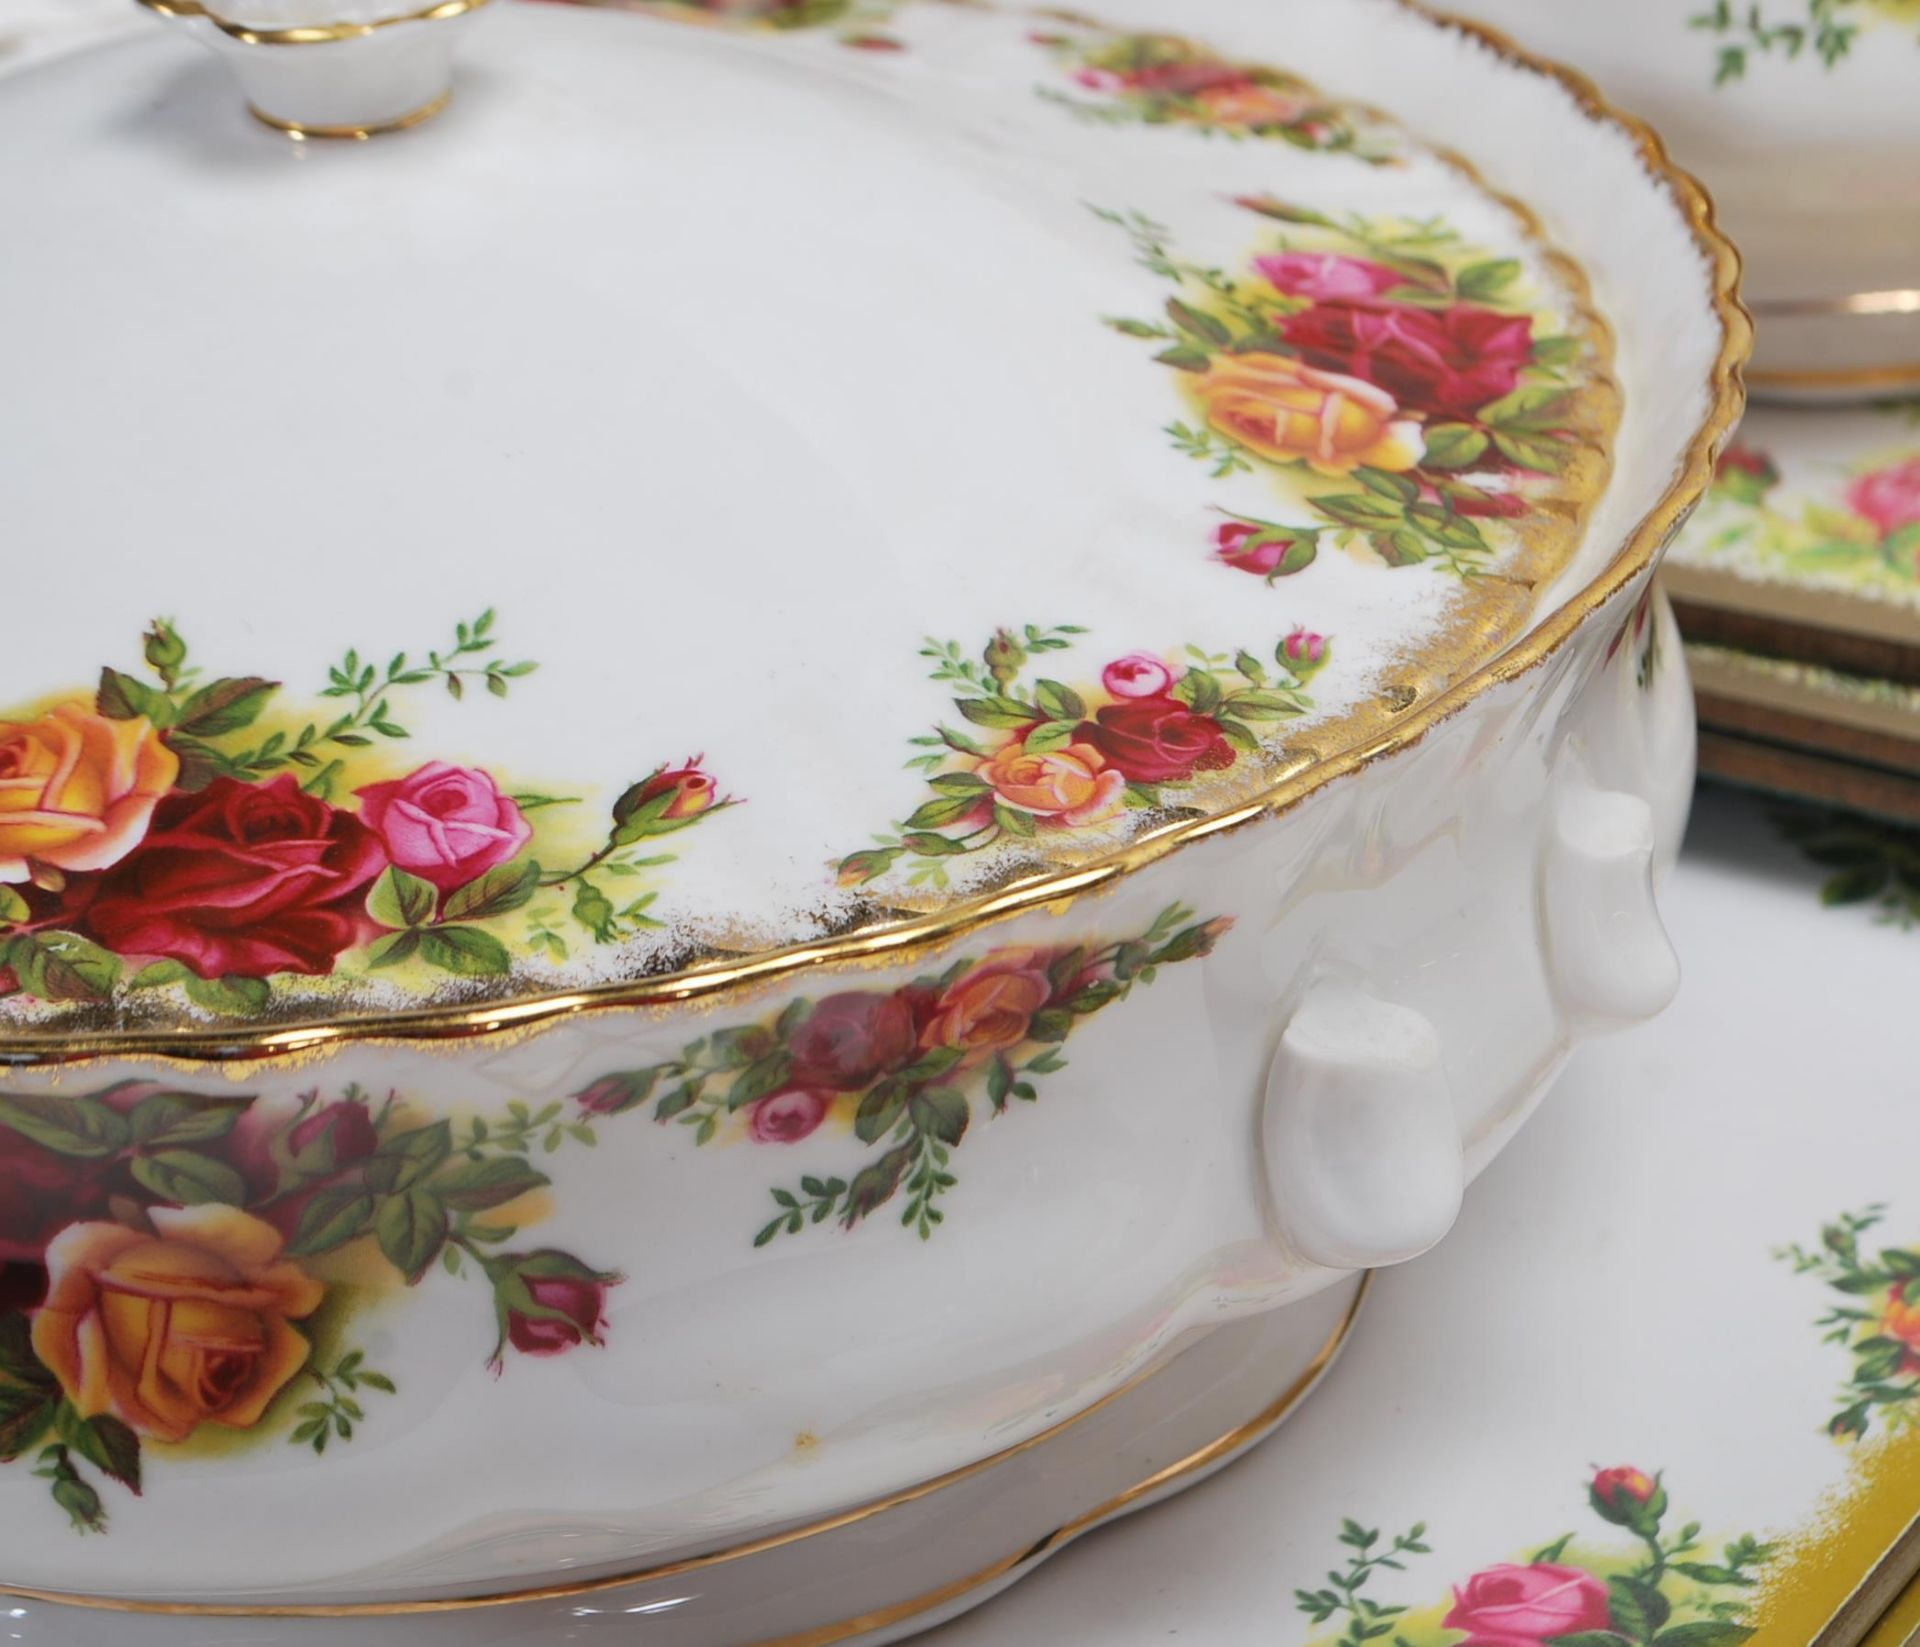 LARGE ROYAL ALBERT OLD CONTRY ROSES DINING SERVICE - Image 10 of 11